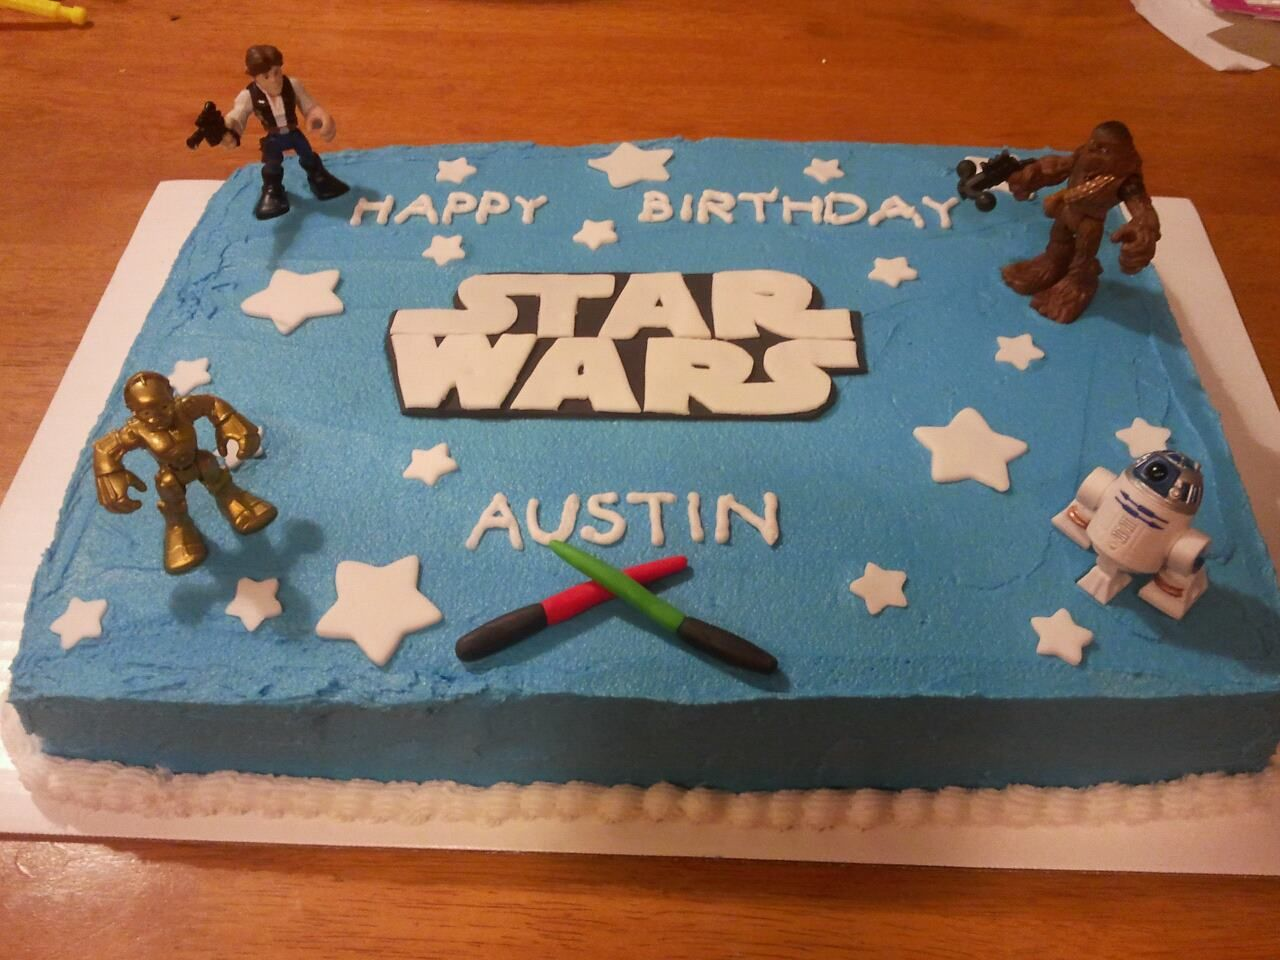 Star Wars Cake Star Wars Birthday Cake Star Wars Cake Toppers